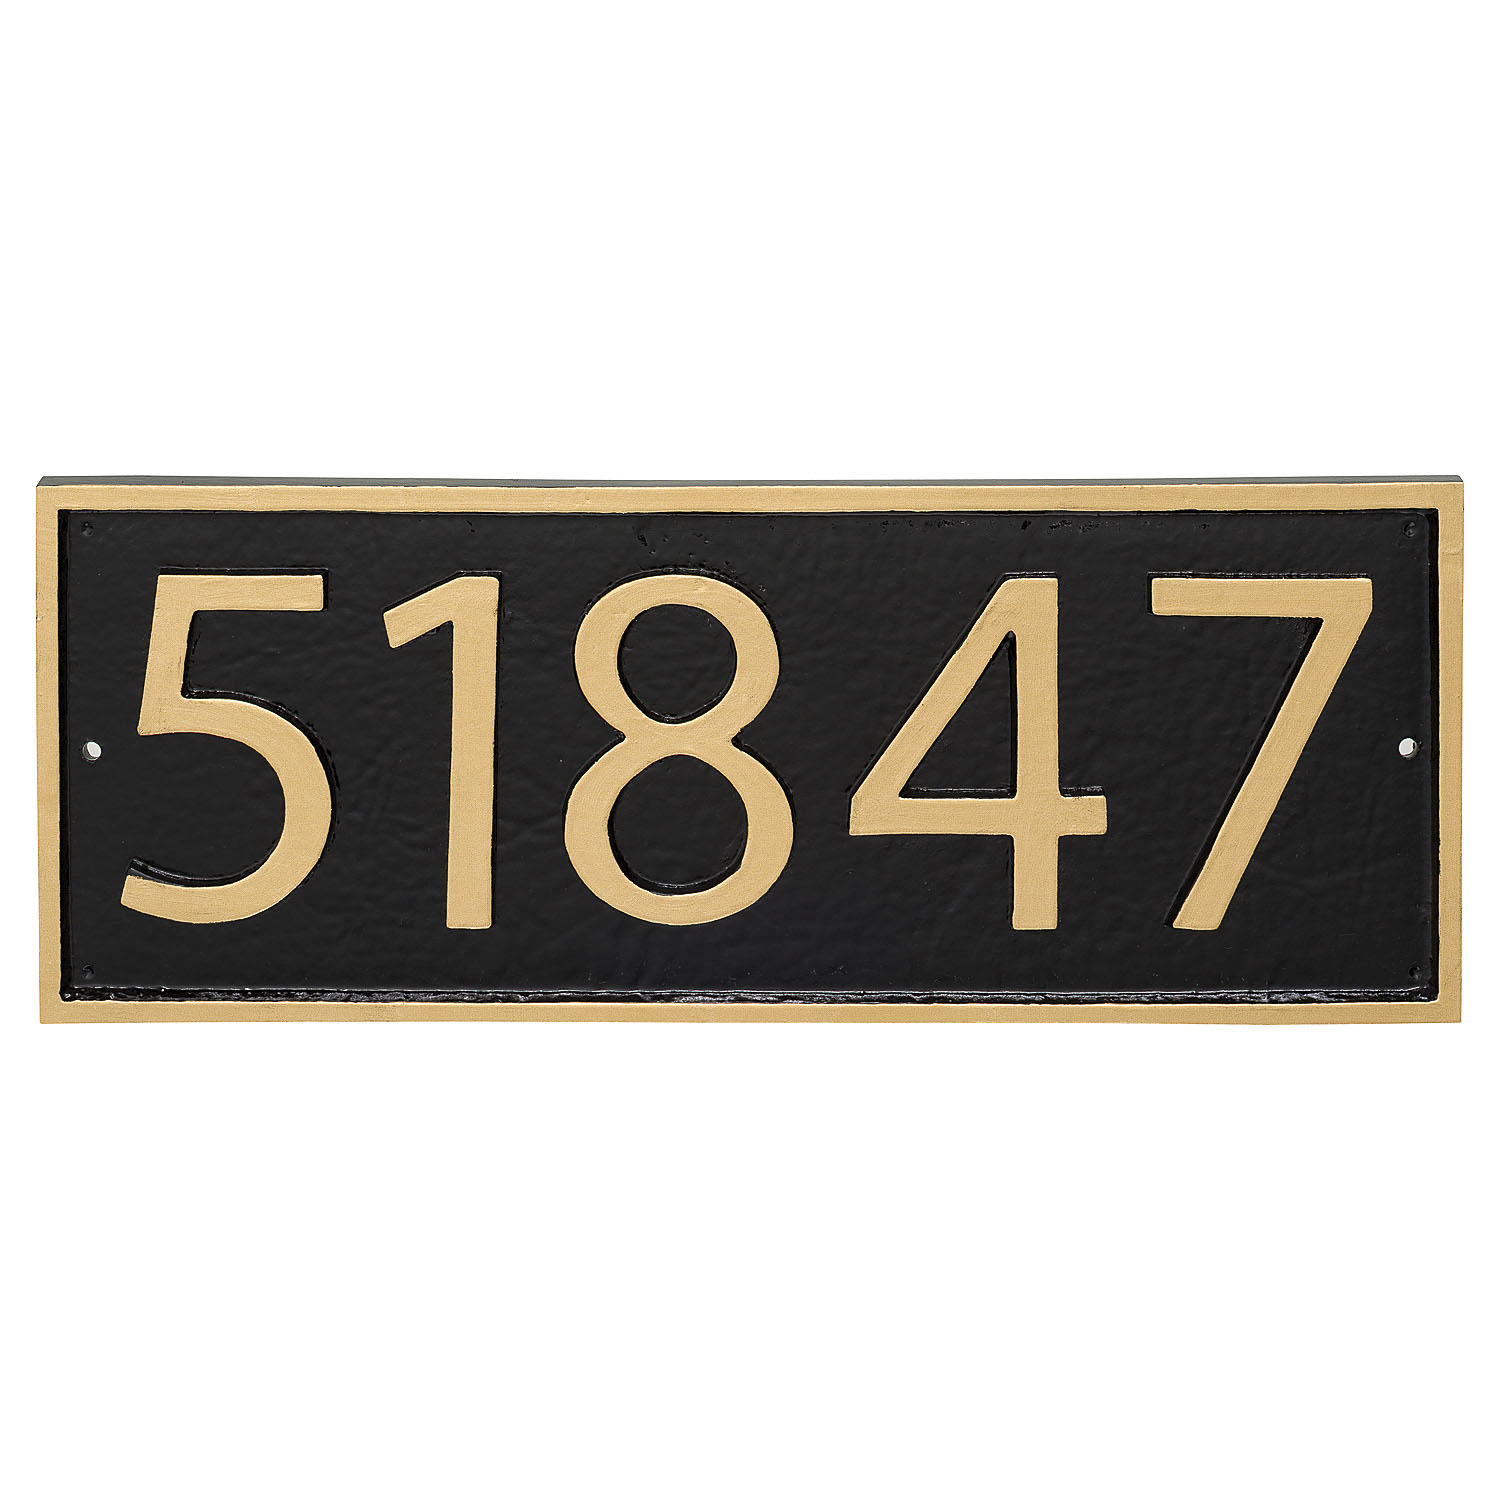 Rectangle Modern Economy Address Plaque (holds up to 5 characters)